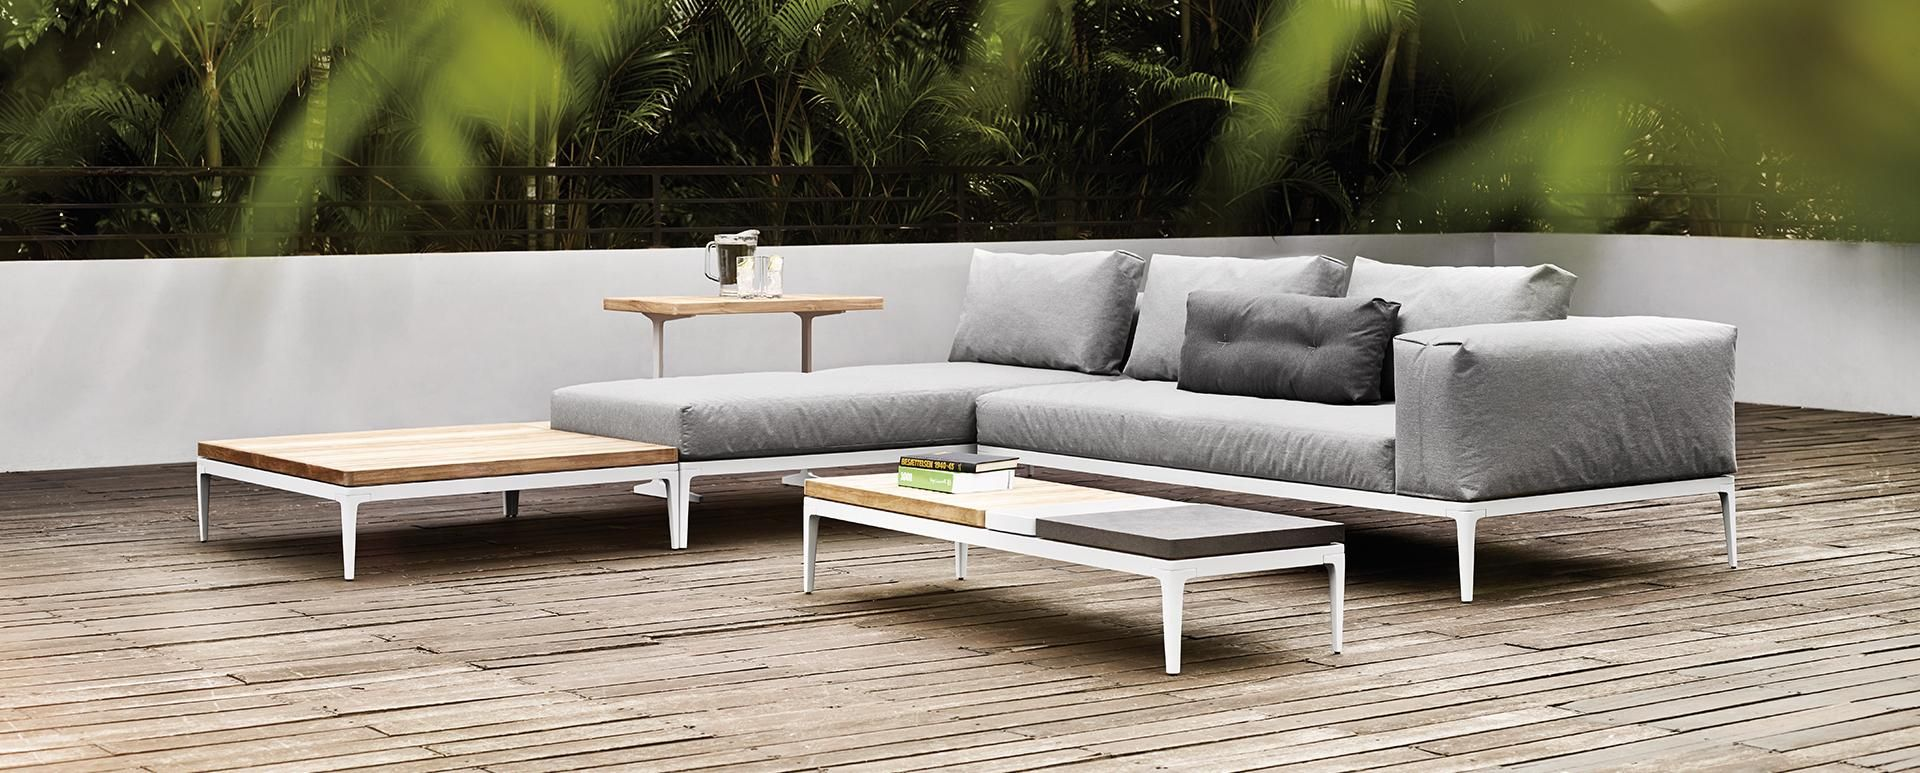 Should You Buy Low-End Big Box Retailer Patio Furniture or High End Quality Patio Furniture?